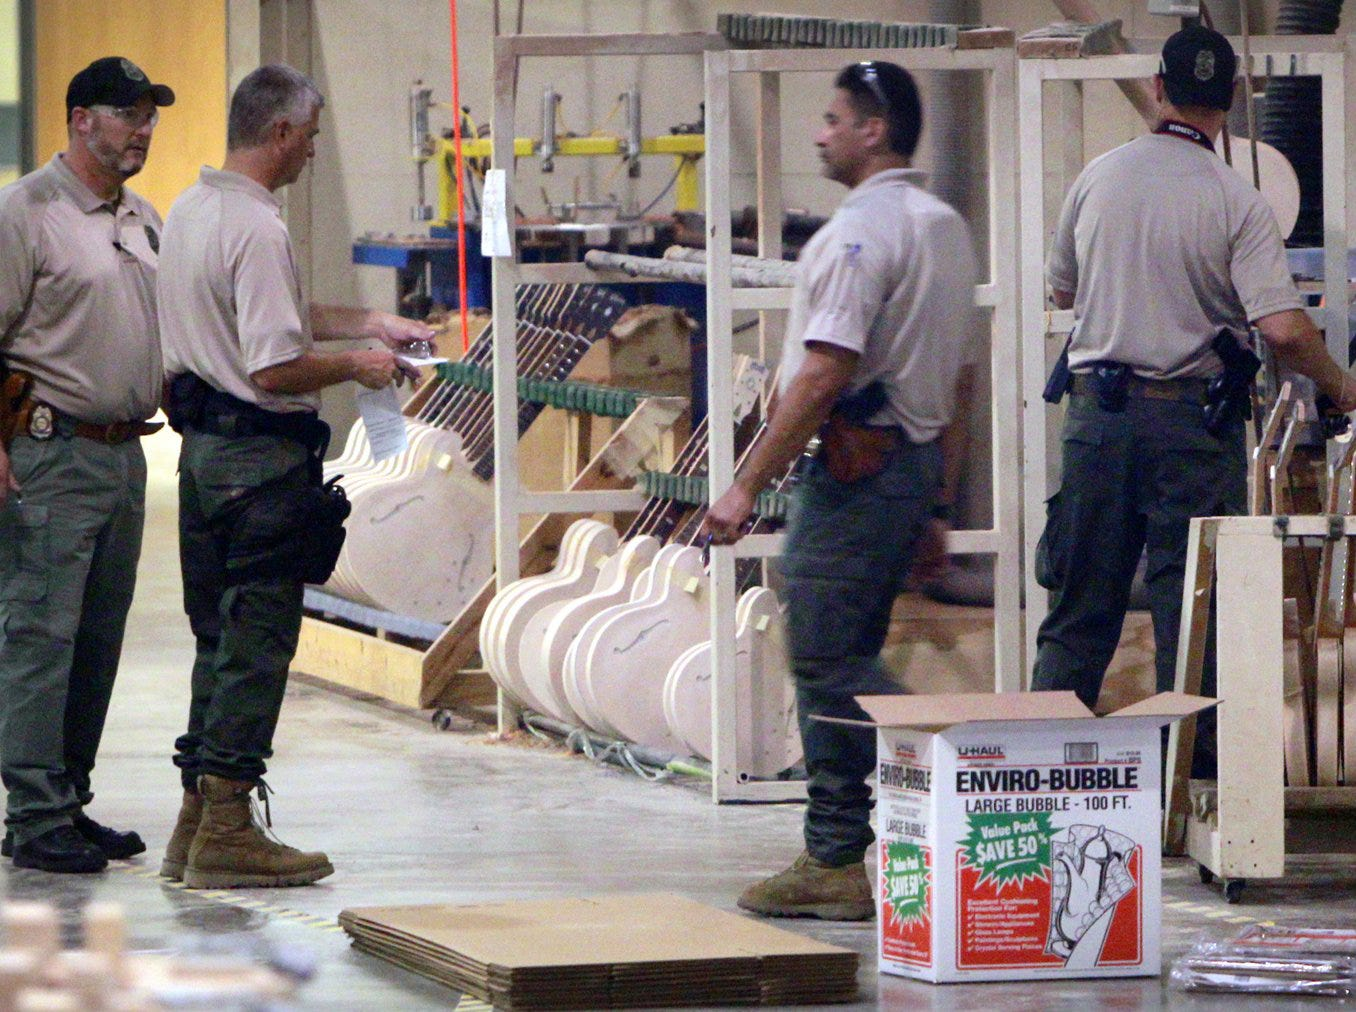 Aug. 24, 2011 - Federal investigators raided the workshop at the Gibson Guitar factory.